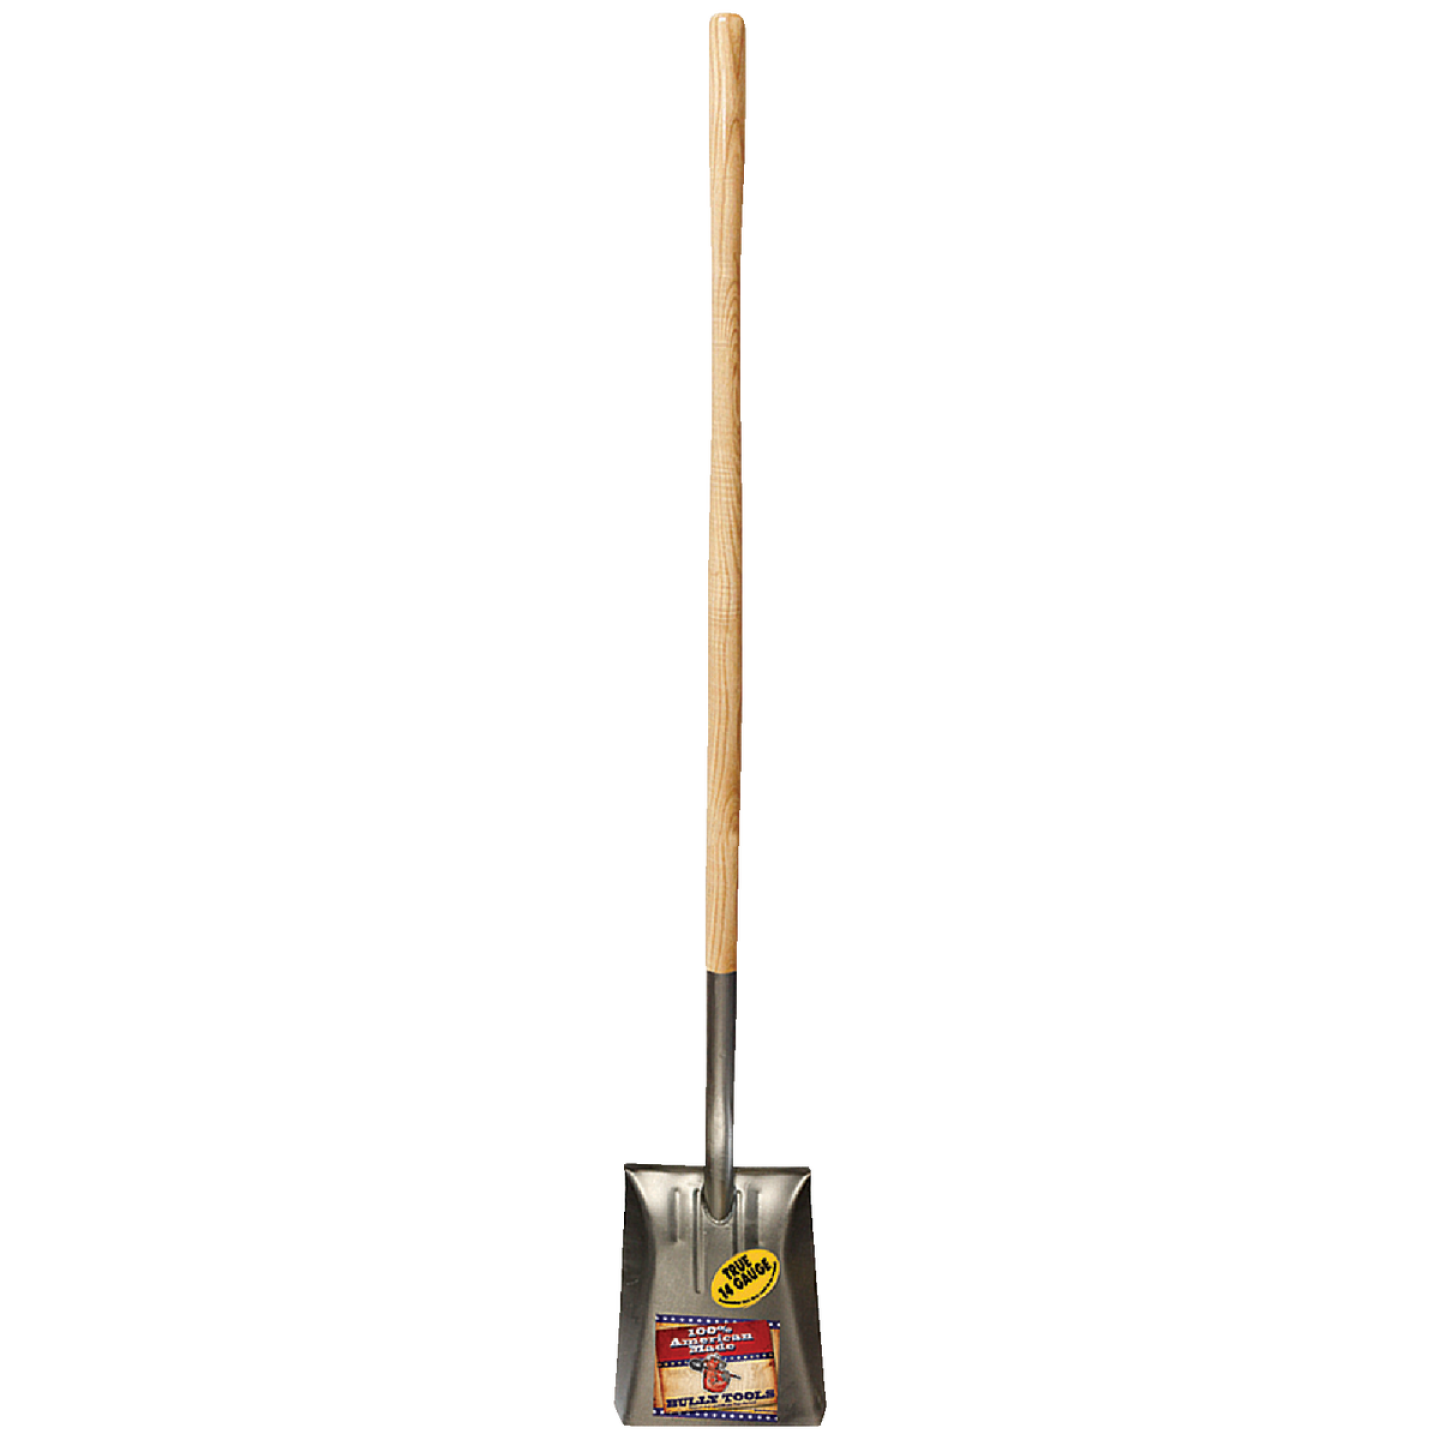 Bully Tools 46 In. Wood Handle Square Point Shovel Image 2